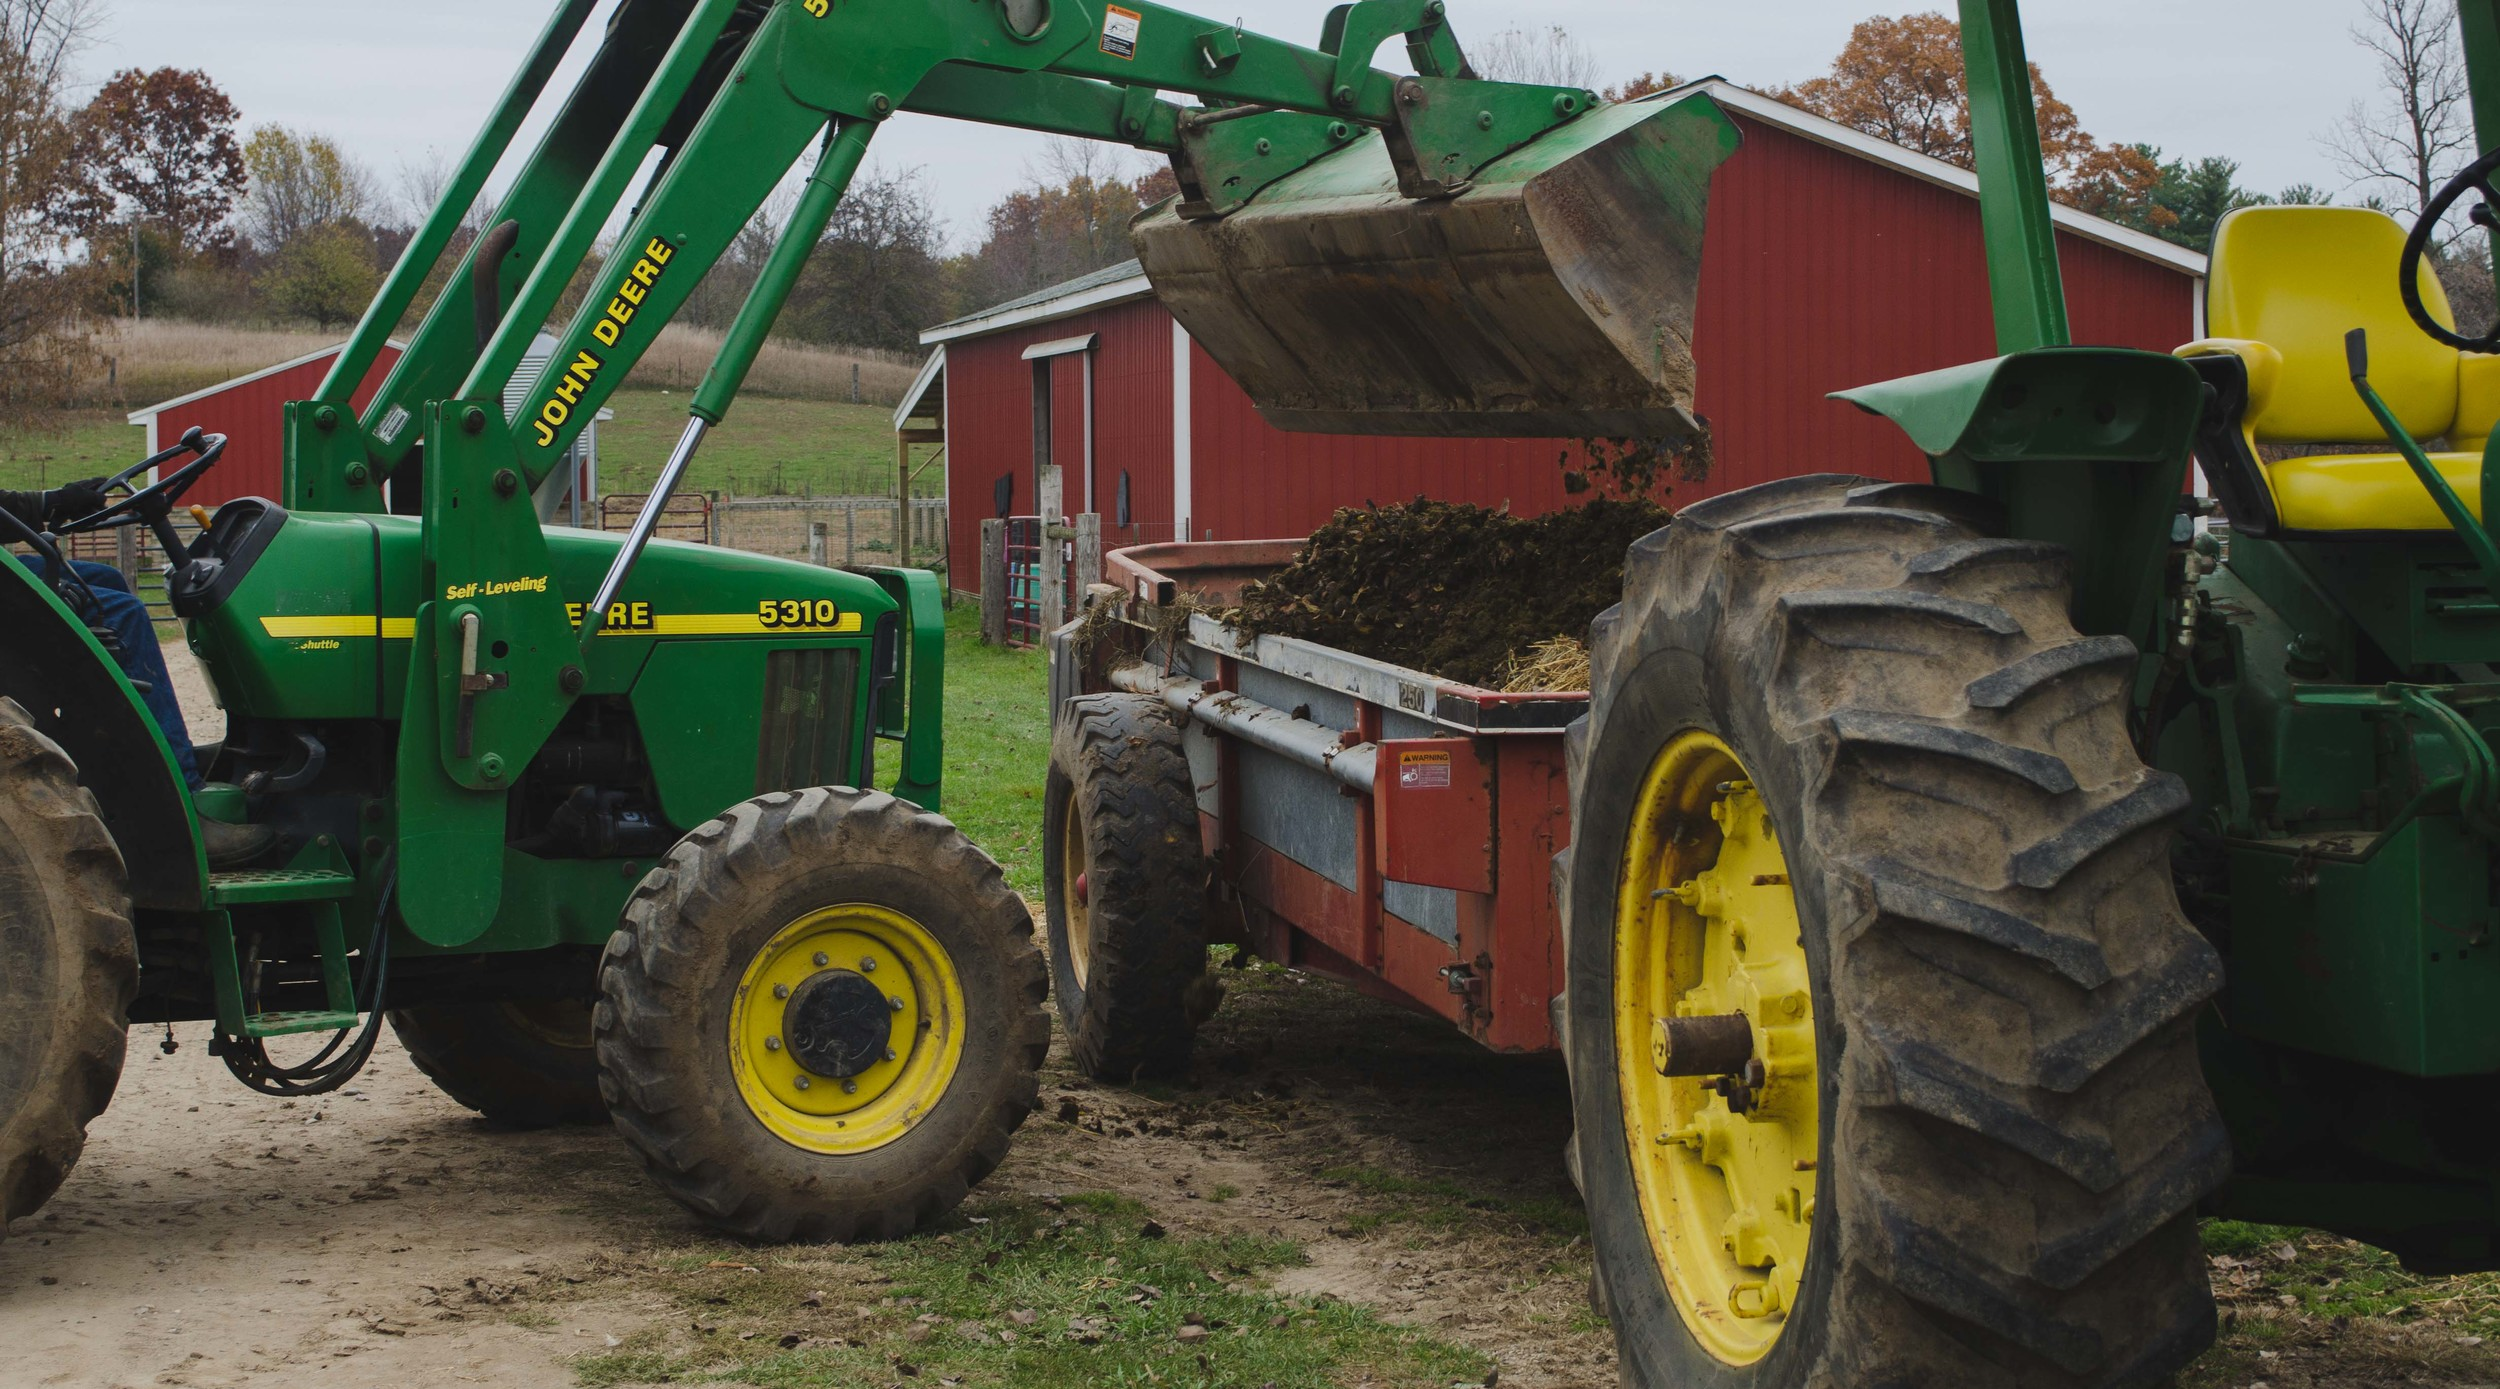 Filling the manure spreader, to be taken and spread out over a field